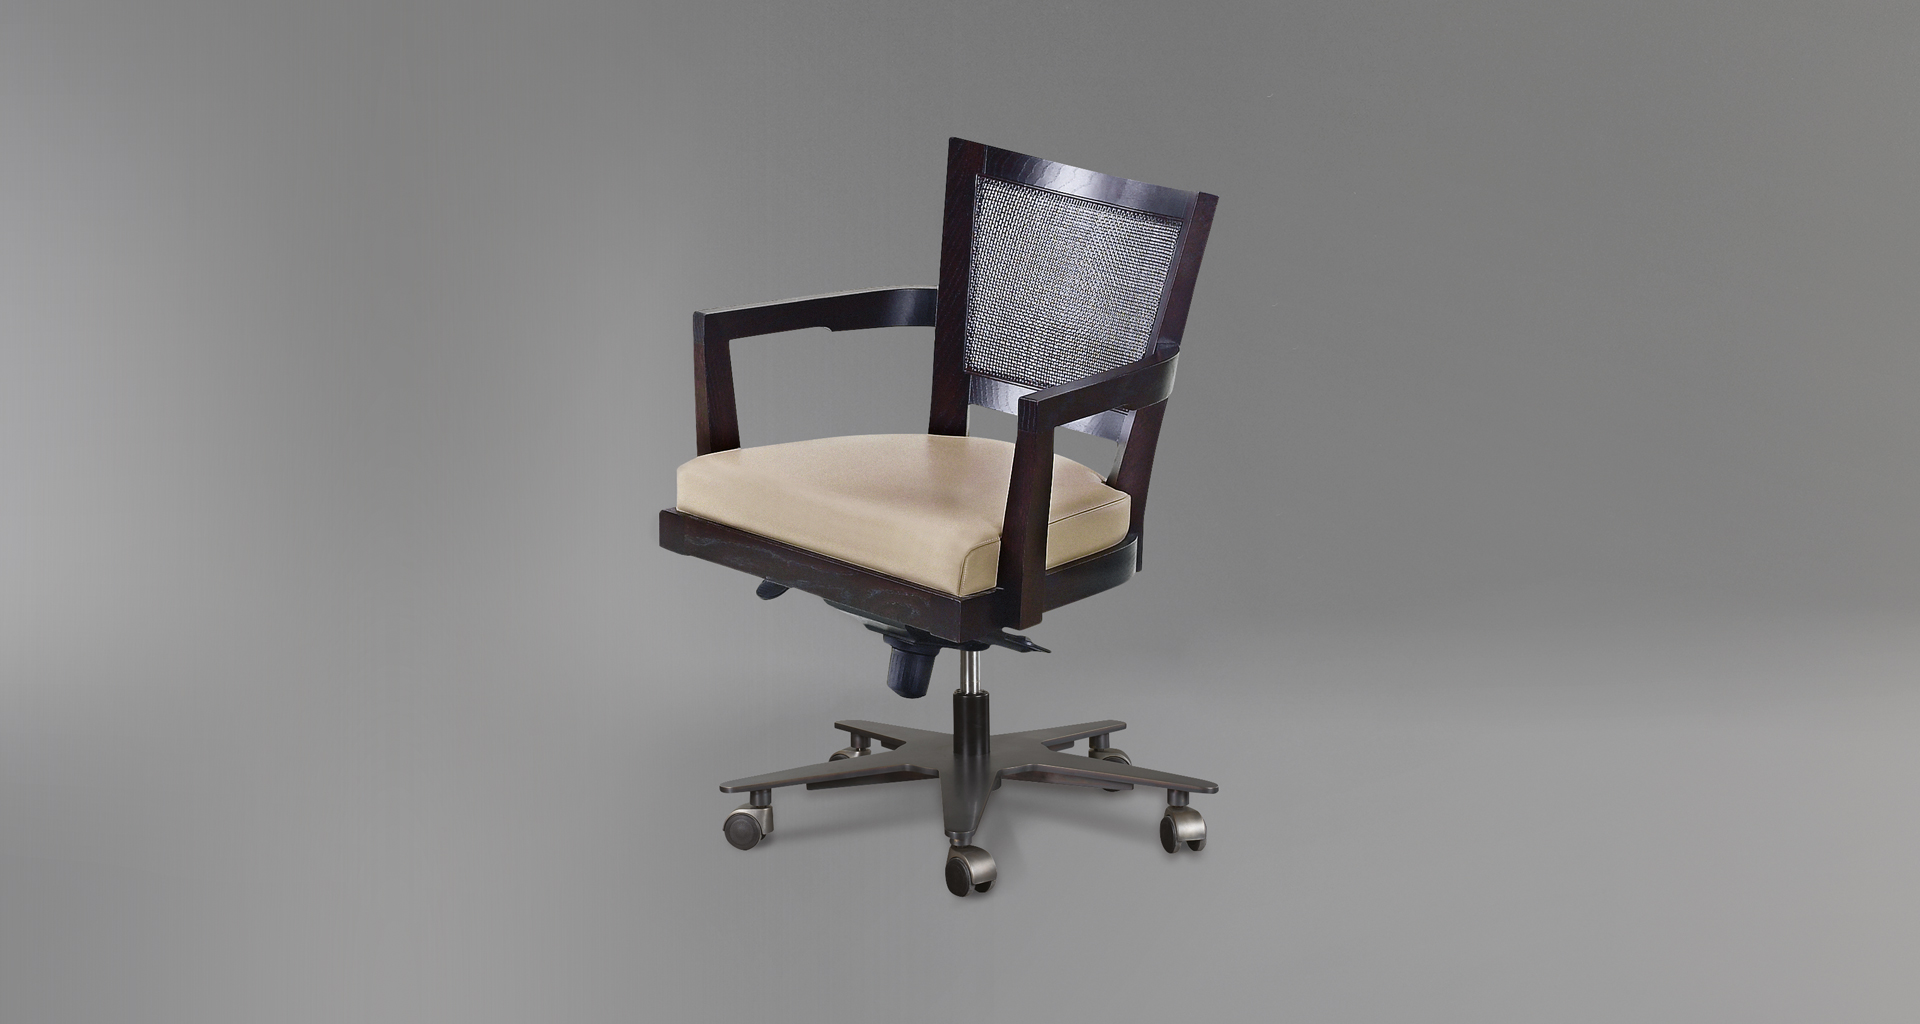 Caffè is a wooden office chair with straw back and fabric or leather seat, from Promemoria's catalogue | Promemoria